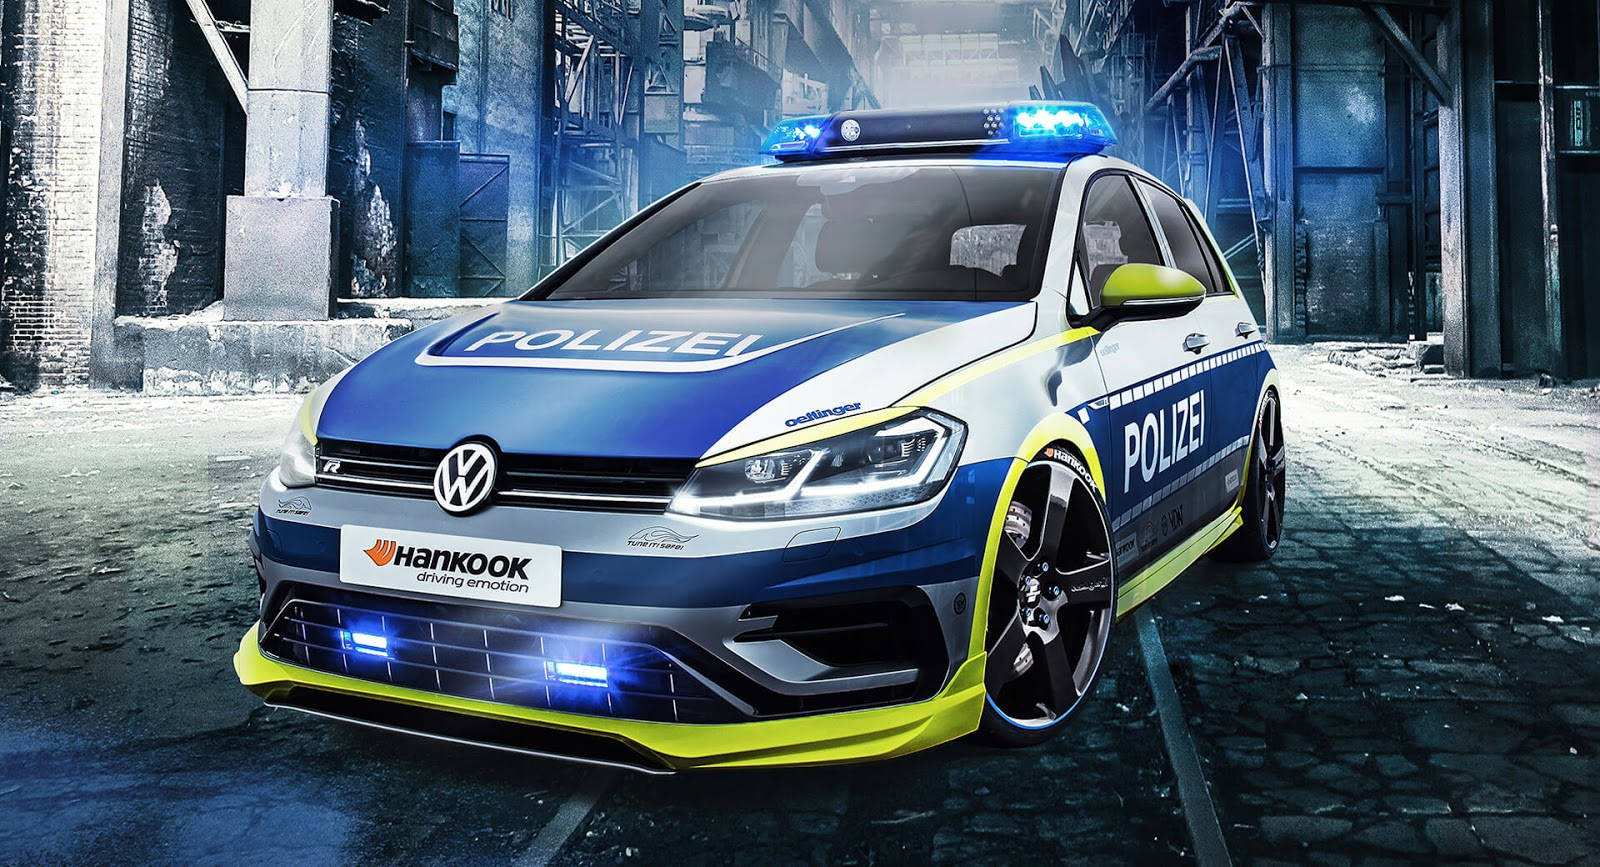 Oettinger Built This One Off Vw Golf 400r Police Car